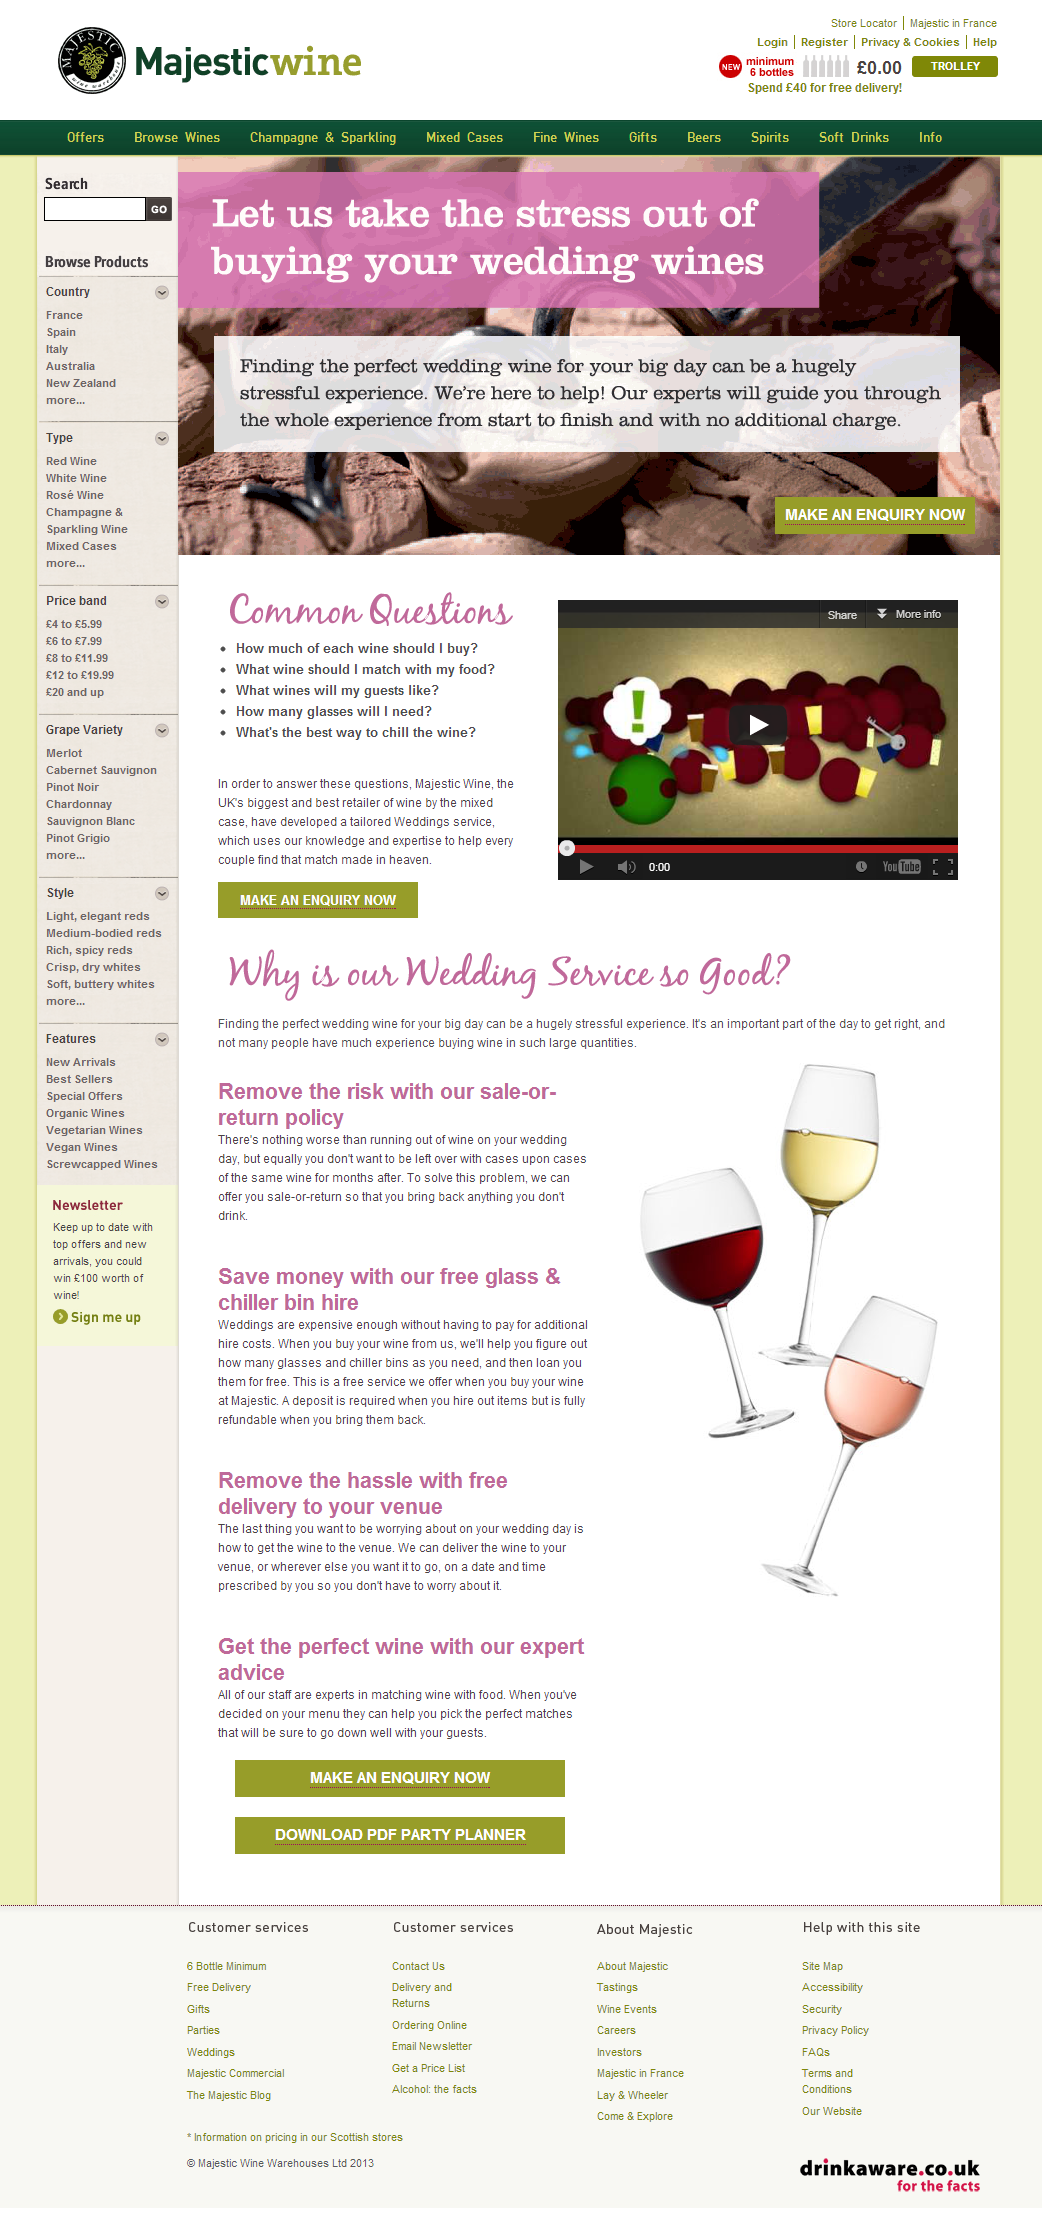 Vino - screenshoto di majestic wine - sfidante - Esperimento per Conversion Rate Optimization